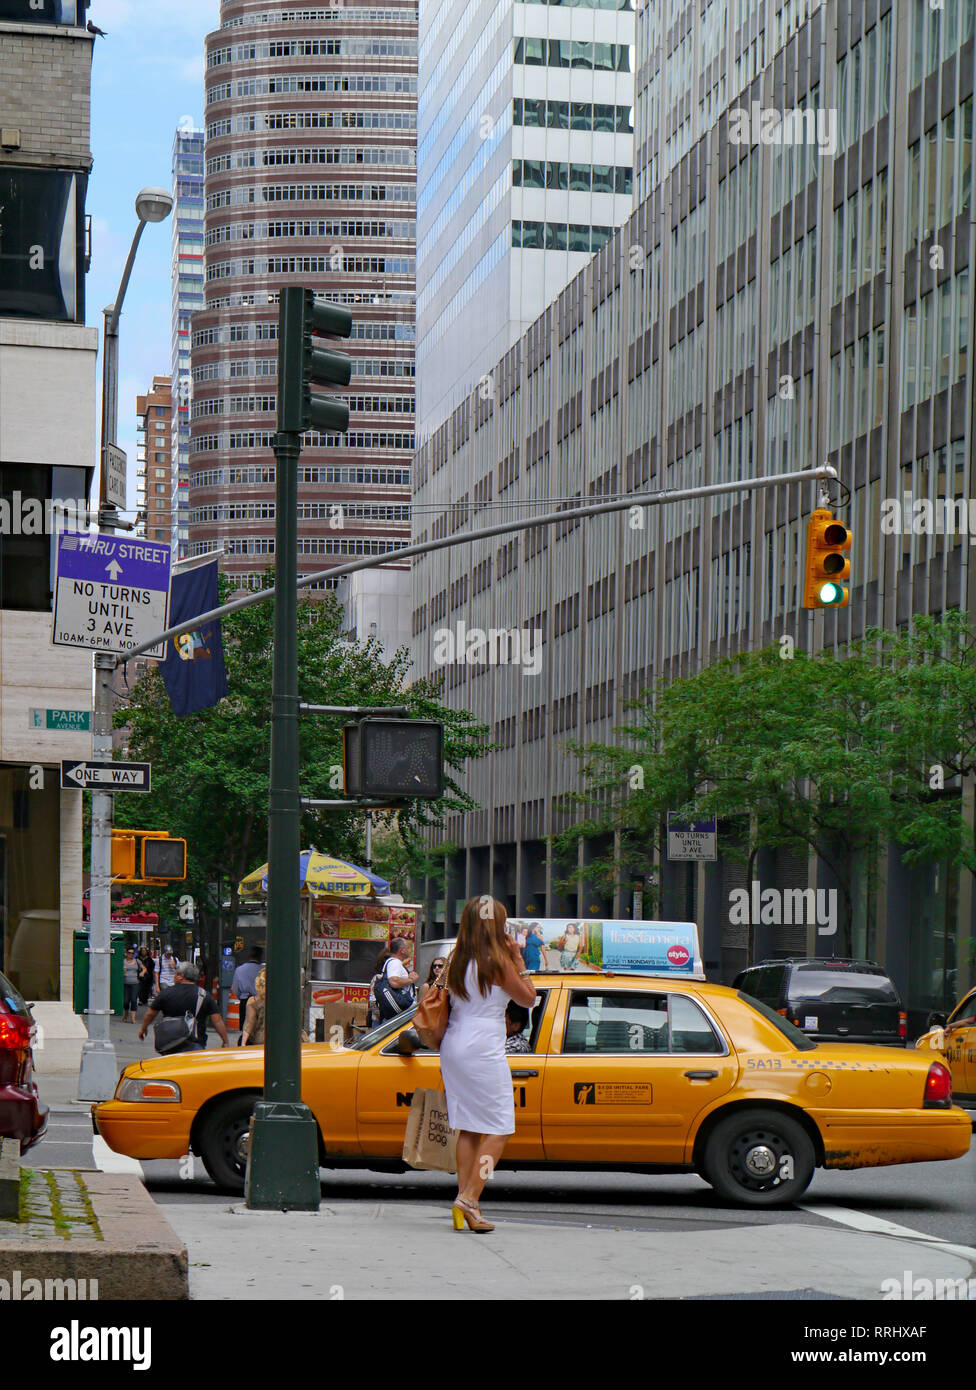 NEW YORK - JUNE 2012:  Gridlock on busy streets such as Park Avenue often blocks pedestrians trying to cross the street. - Stock Image